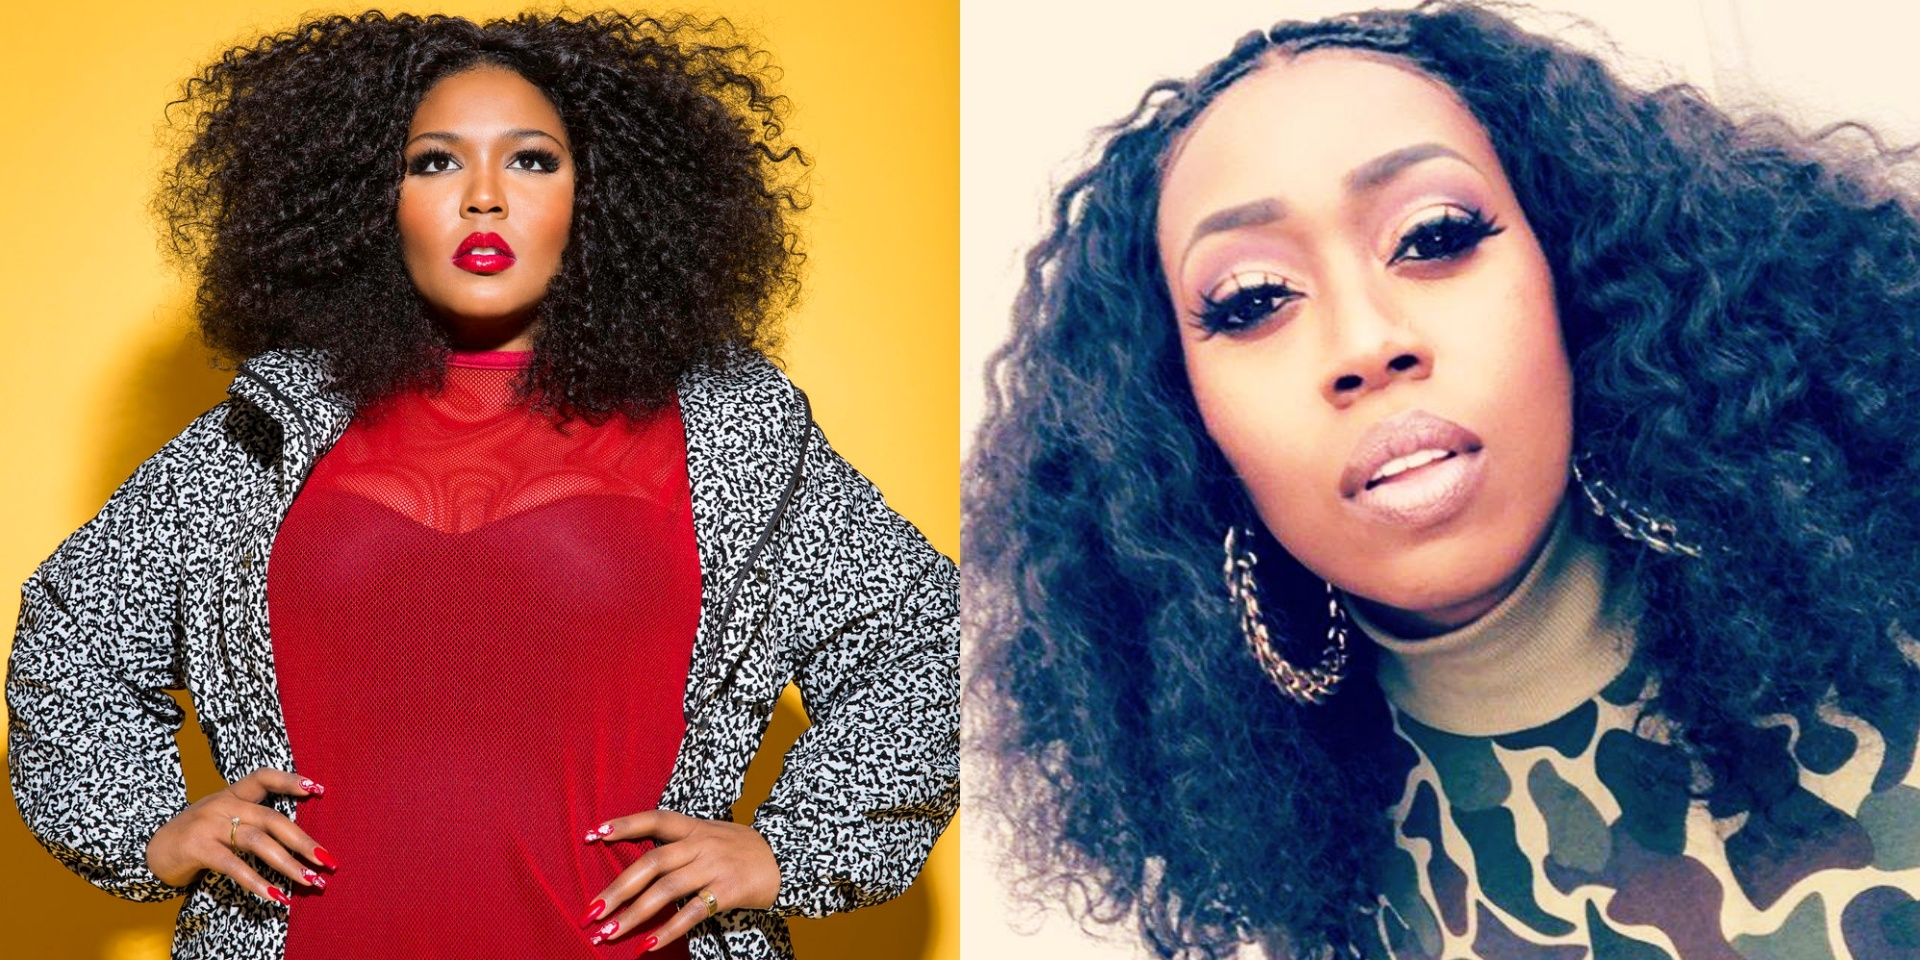 Lizzo releases awesome body positivity anthem 'Tempo' featuring Missy Elliott